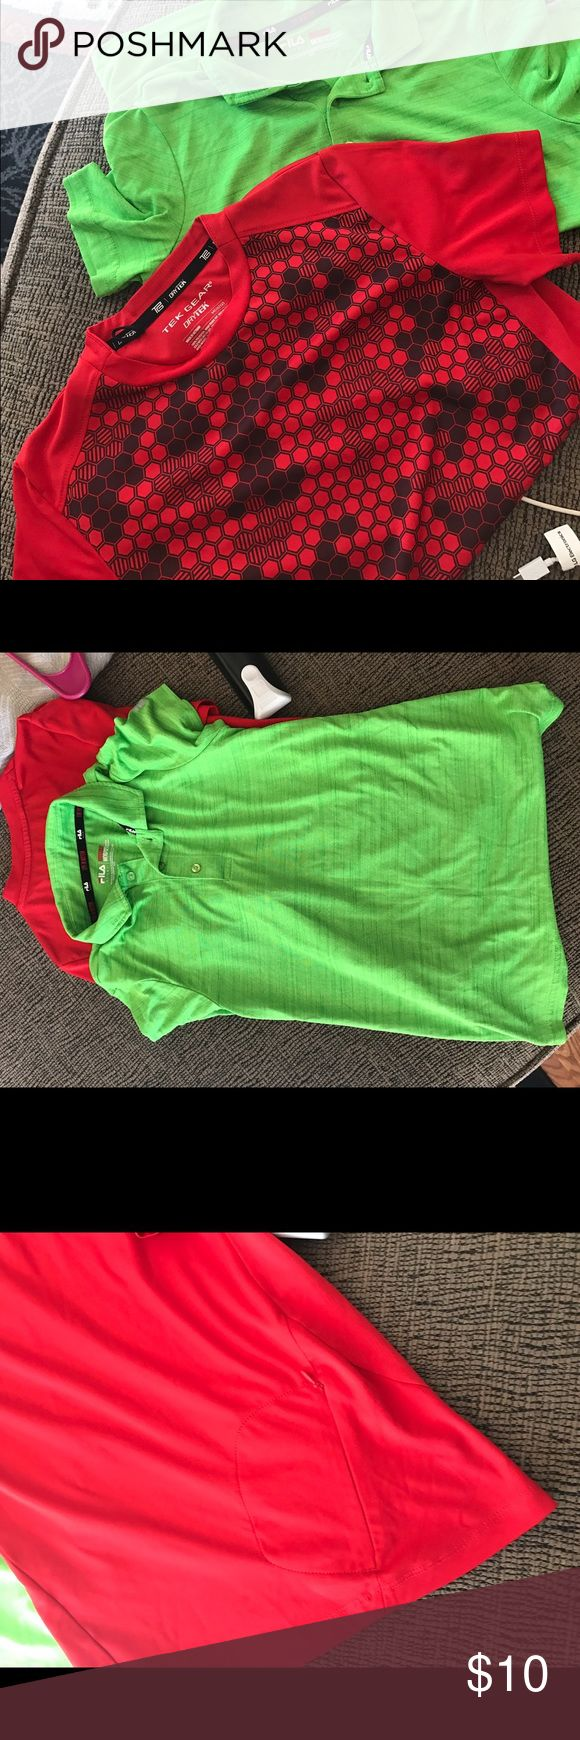 2 boys shirts Excellent condition.  Size 10/12. The lime green shirt is Fila and the red one is tek gear Shirts & Tops Tees - Short Sleeve